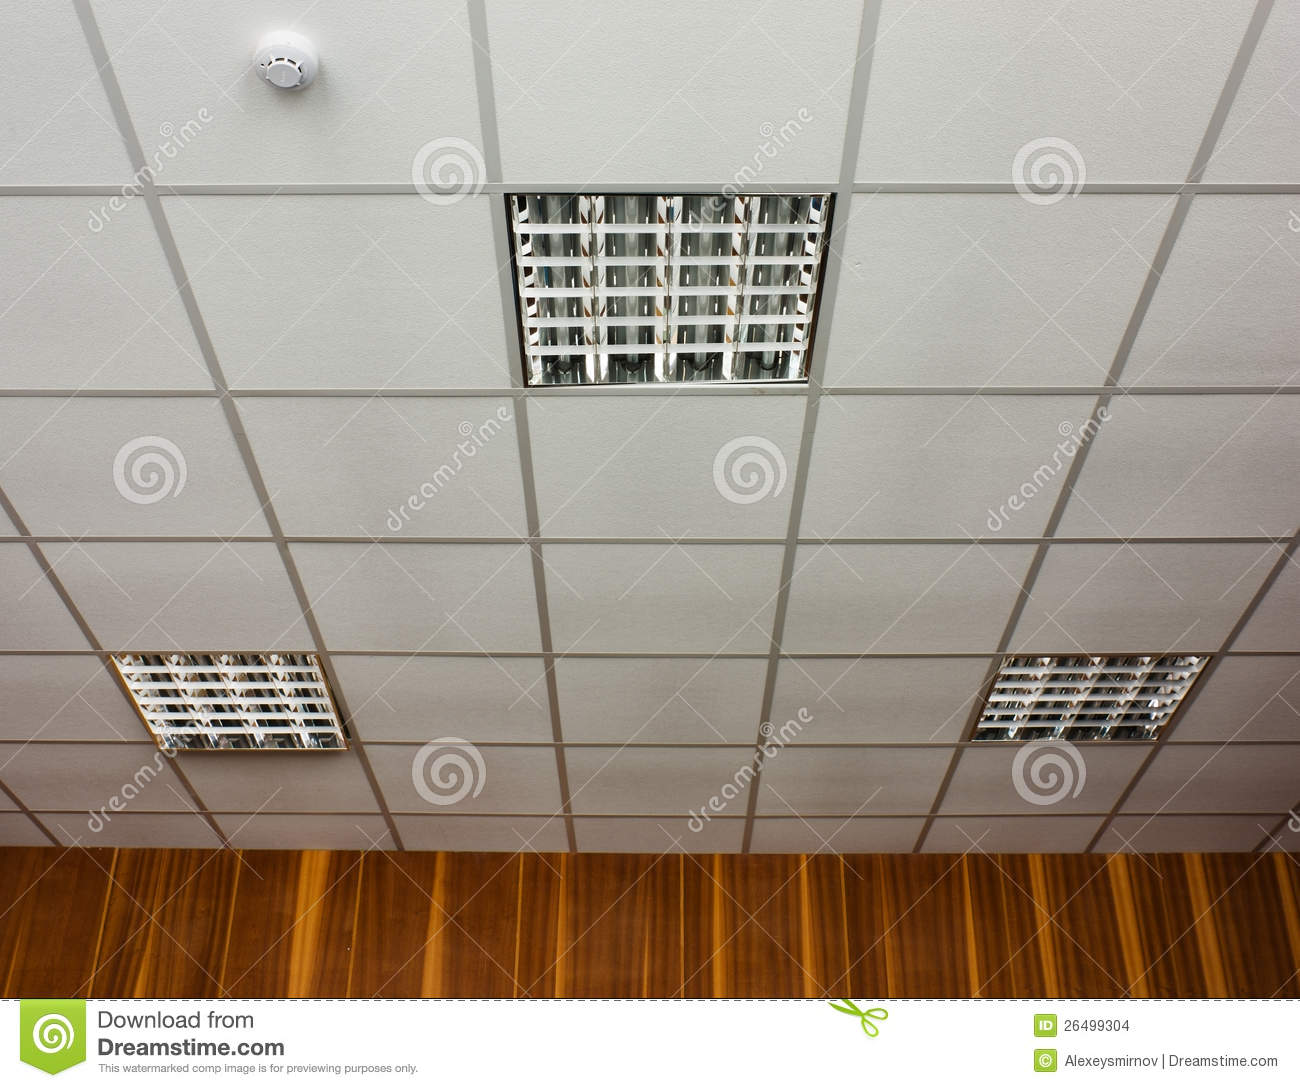 Ceiling Lamp Office: Office Ceiling With Lamps Stock Photo. Image Of Built